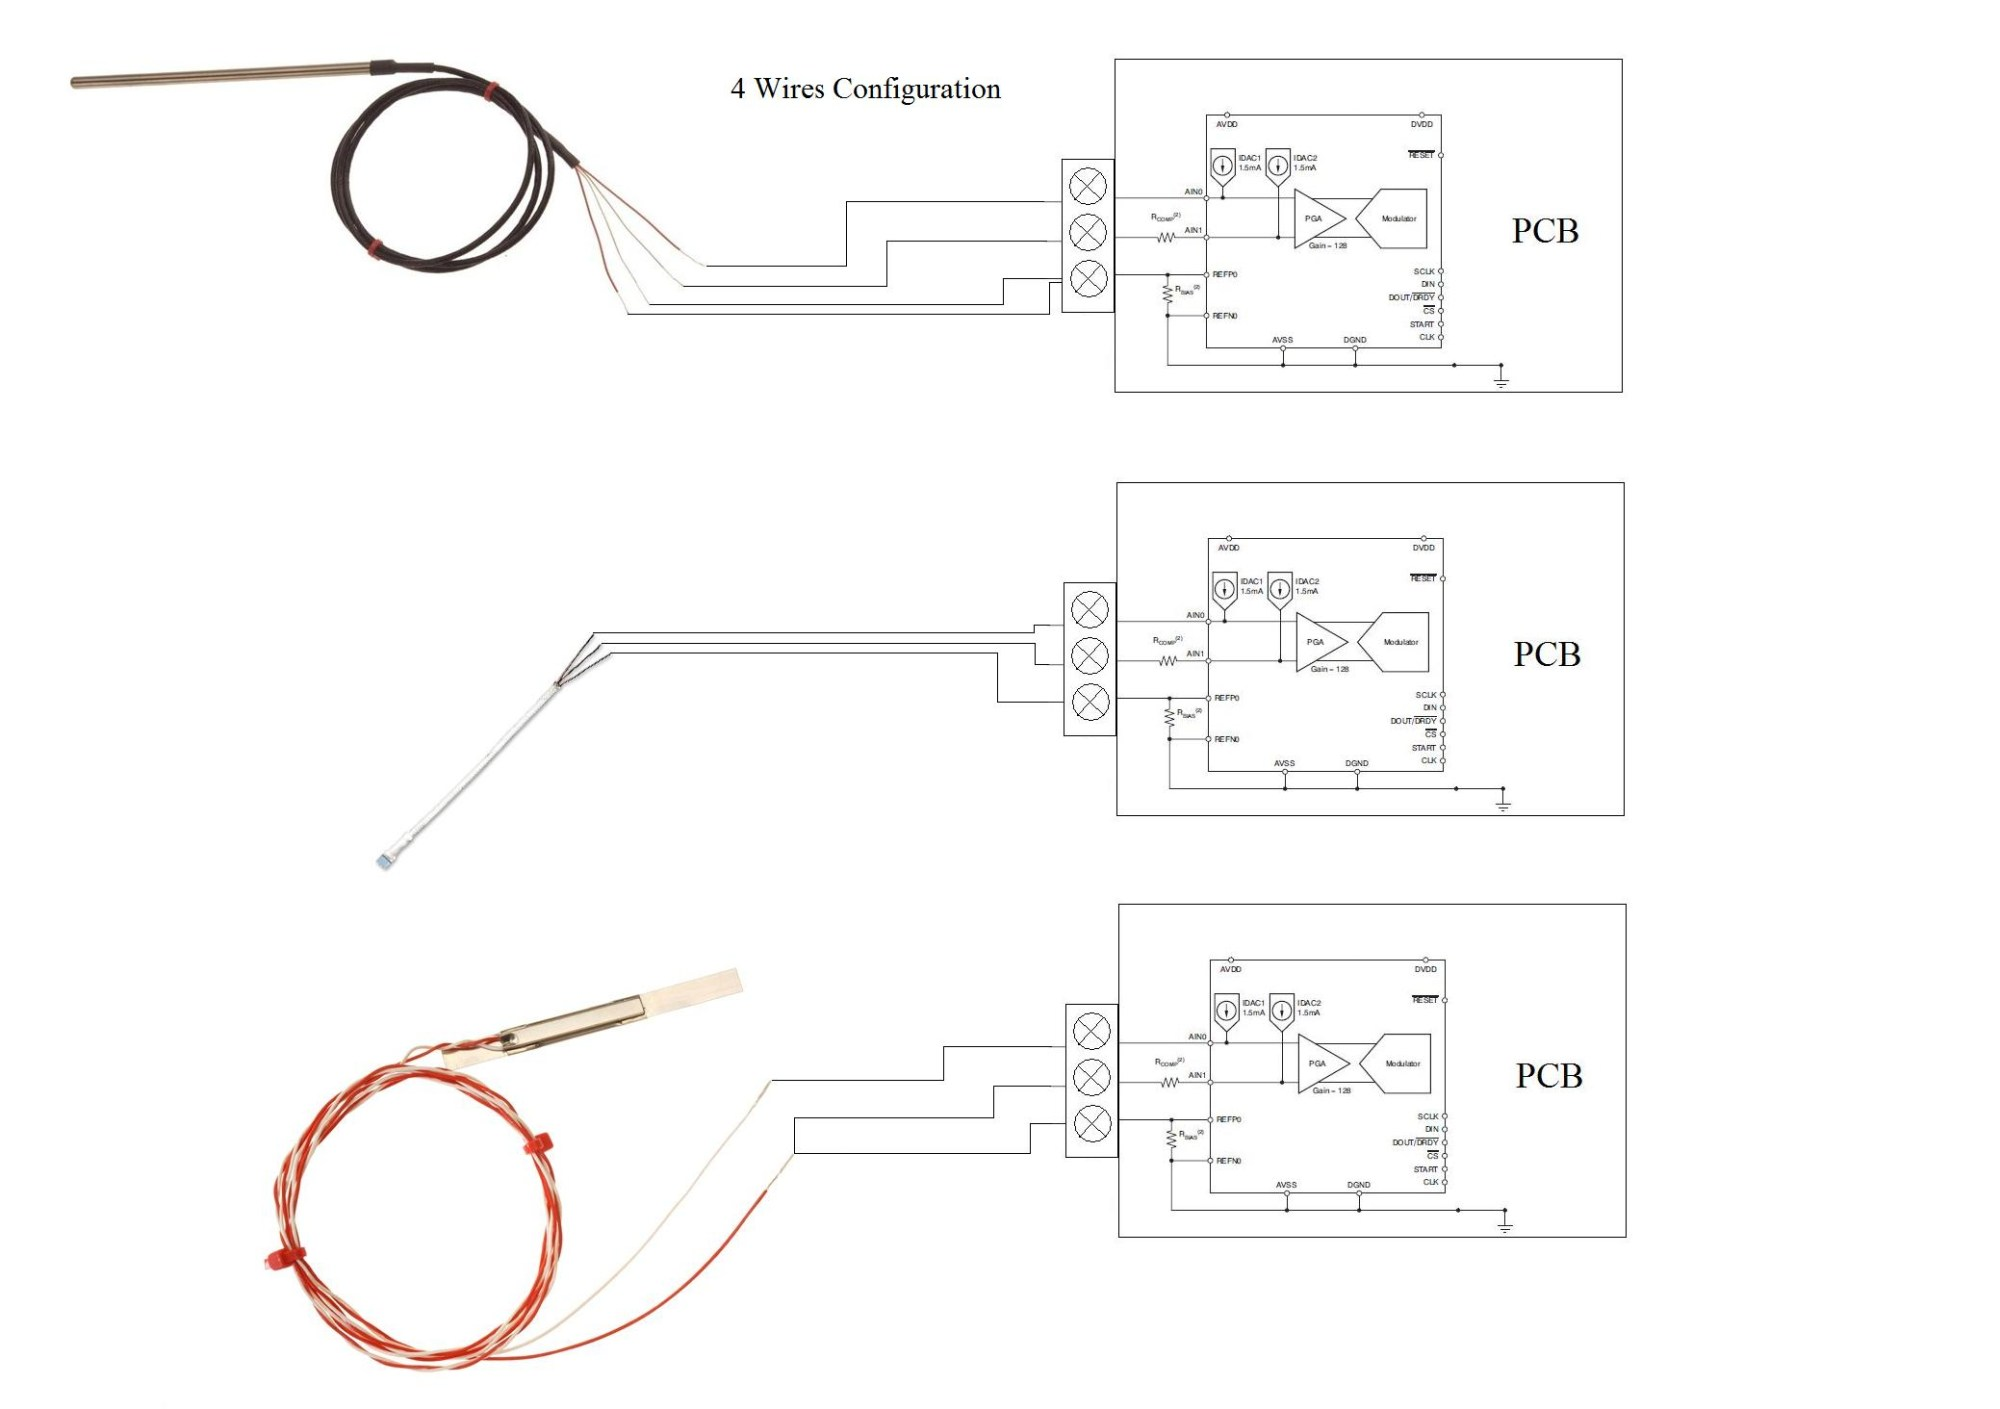 hight resolution of pt100 4 wire connection diagram